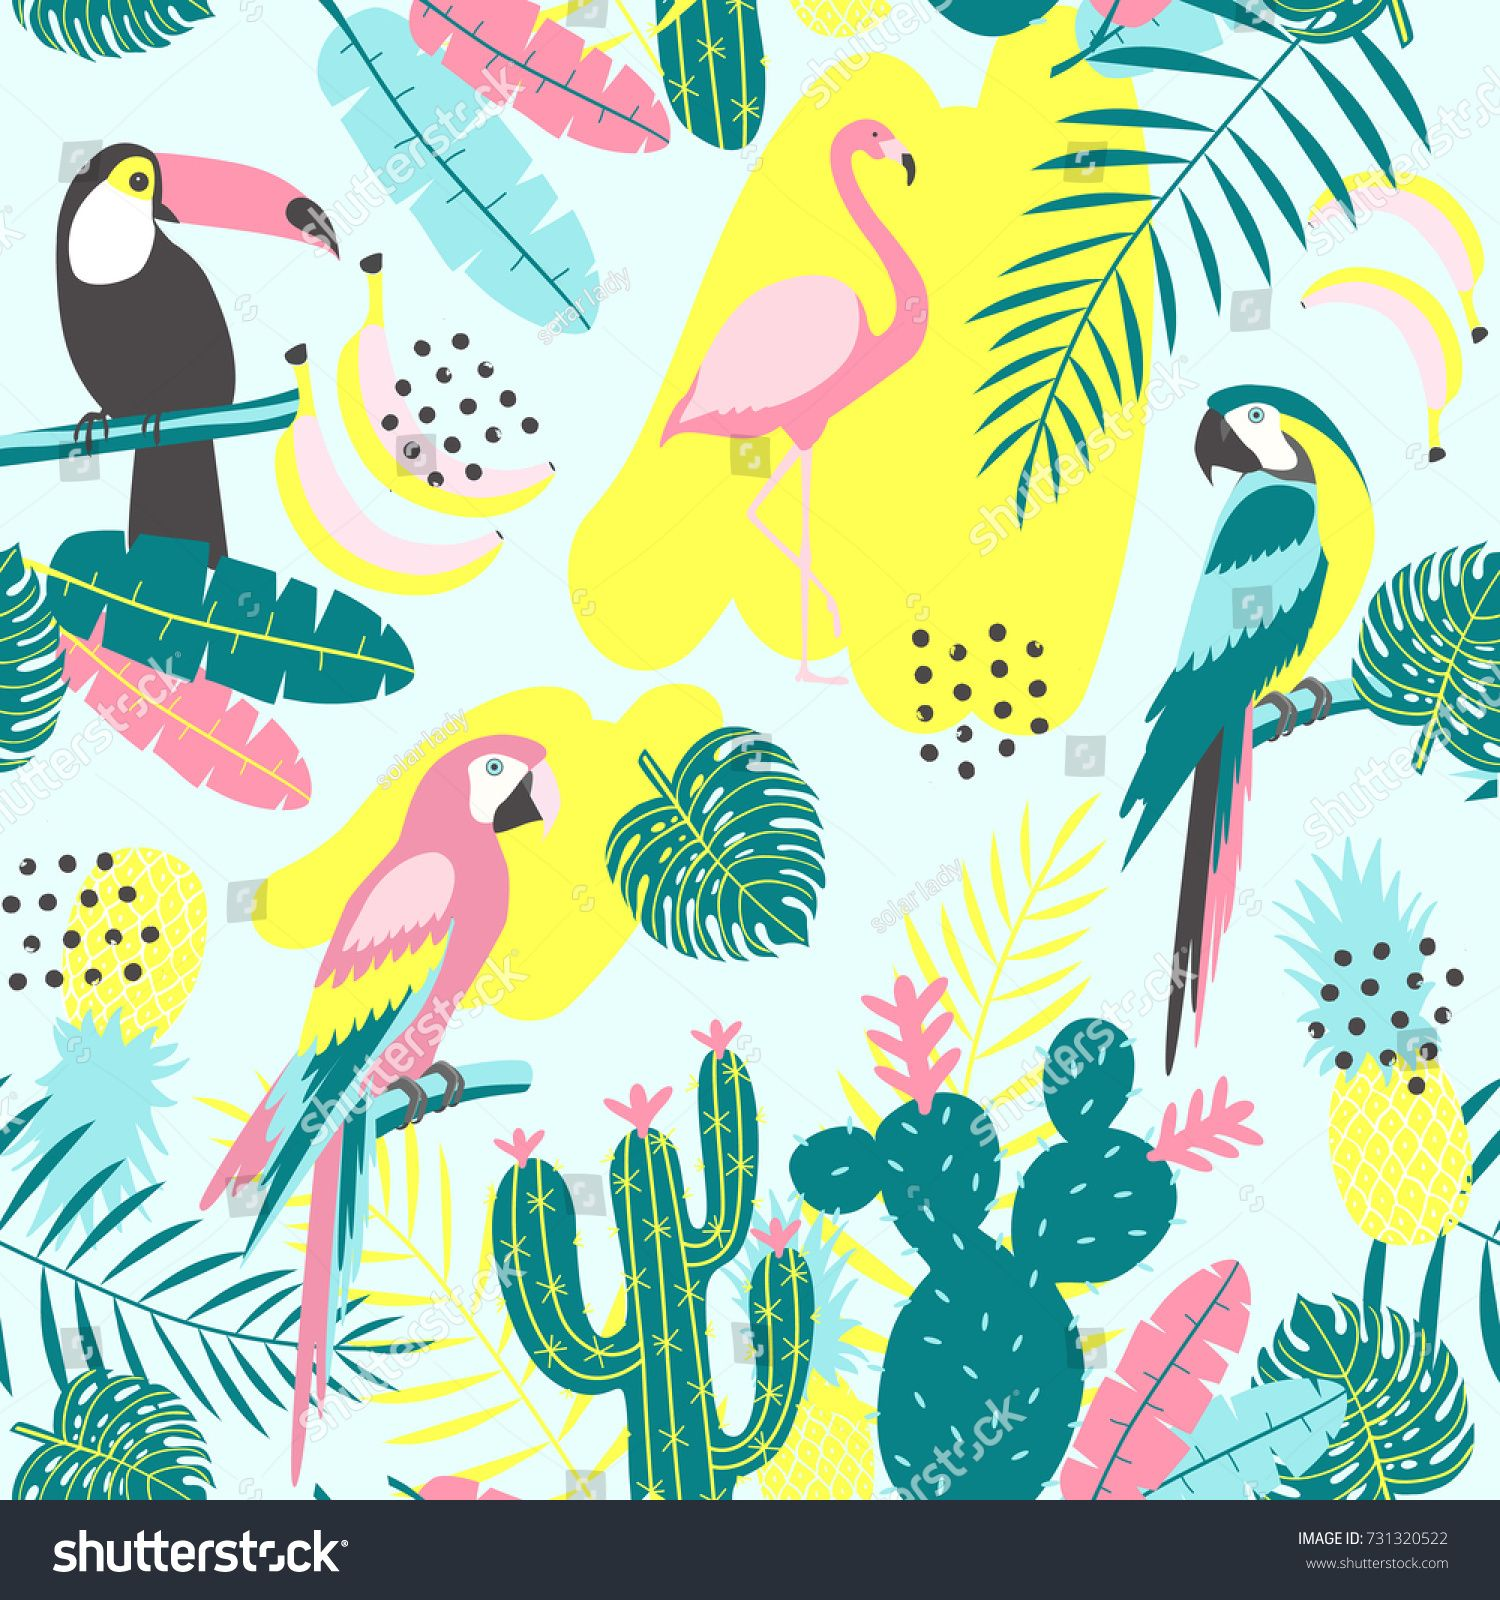 Tropical seamless pattern with toucan, flamingos, parrot, cactuses and exotic leaves. Vector illustration toucan#flamingos#pattern#Tropical #tropicalpattern